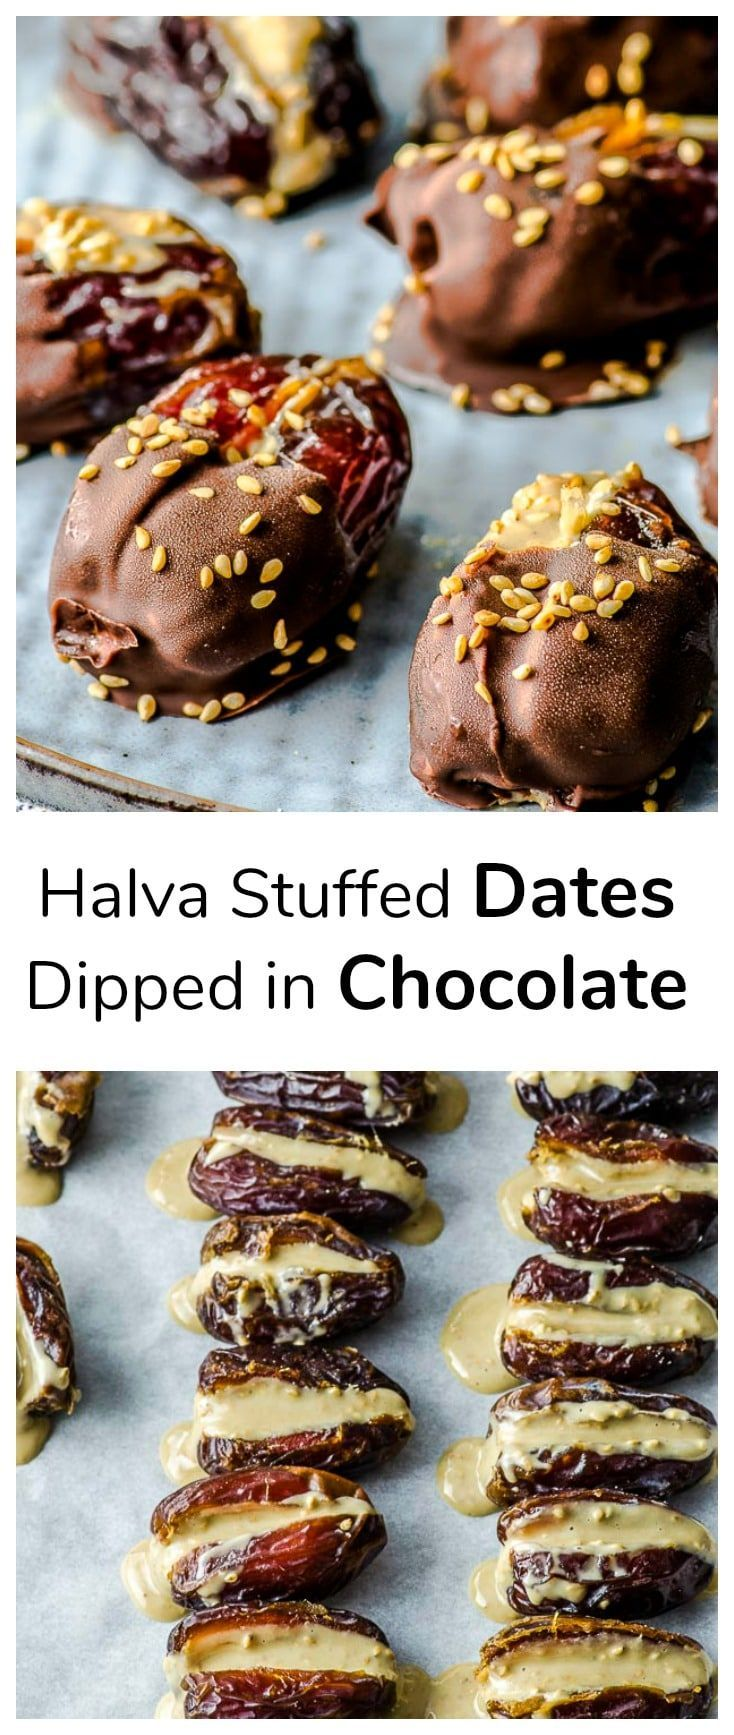 Halva Stuffed Dates Dipped In Chocolate